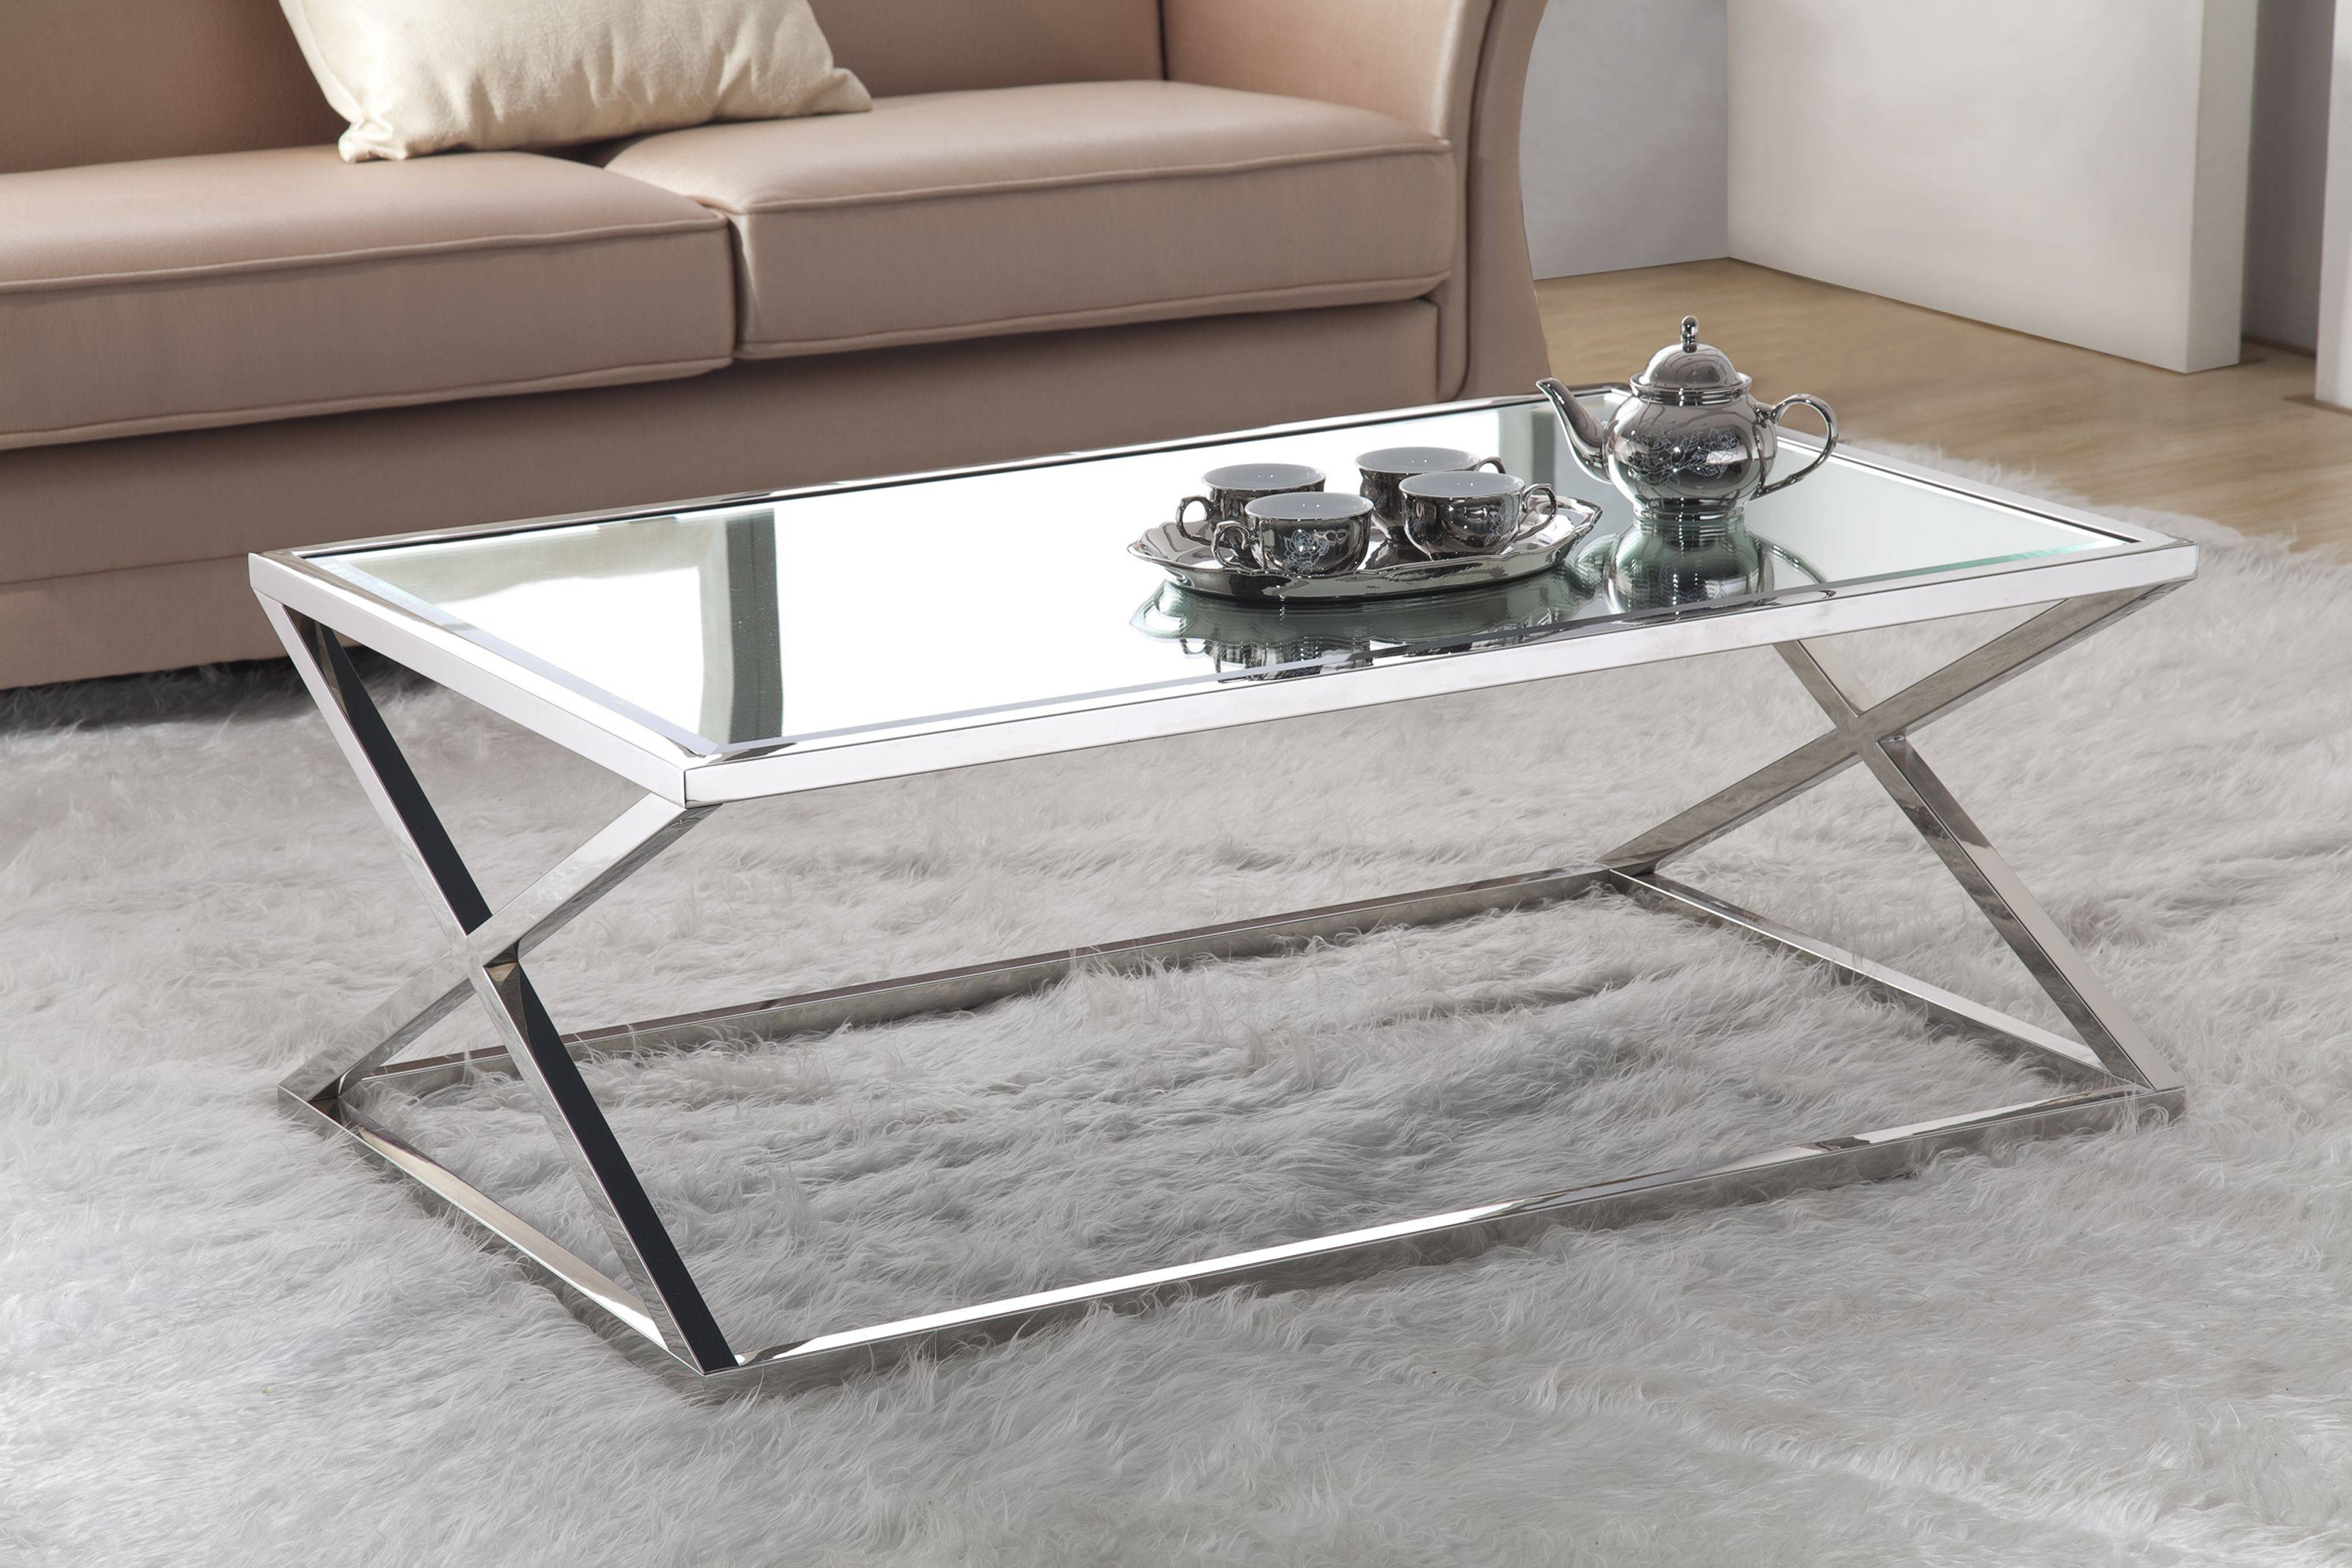 Contemporary Glass Coffee Tables Adding More Style Into The Room for Metal Glass Sofa Tables (Image 10 of 30)